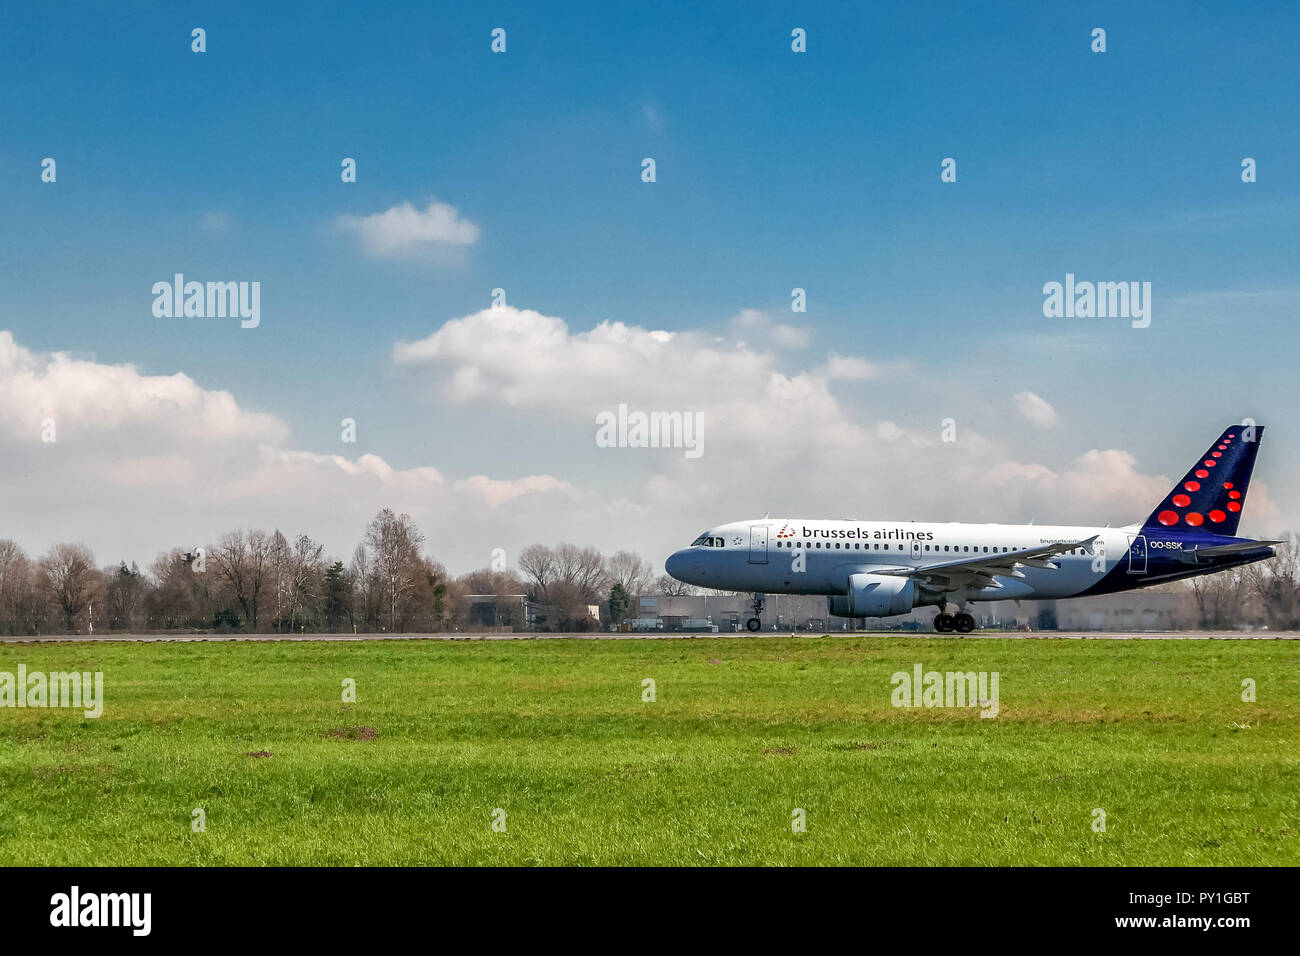 Milan, Italy - 16 March 2018: Brussels Airlines airplane taking off on runway - Stock Image